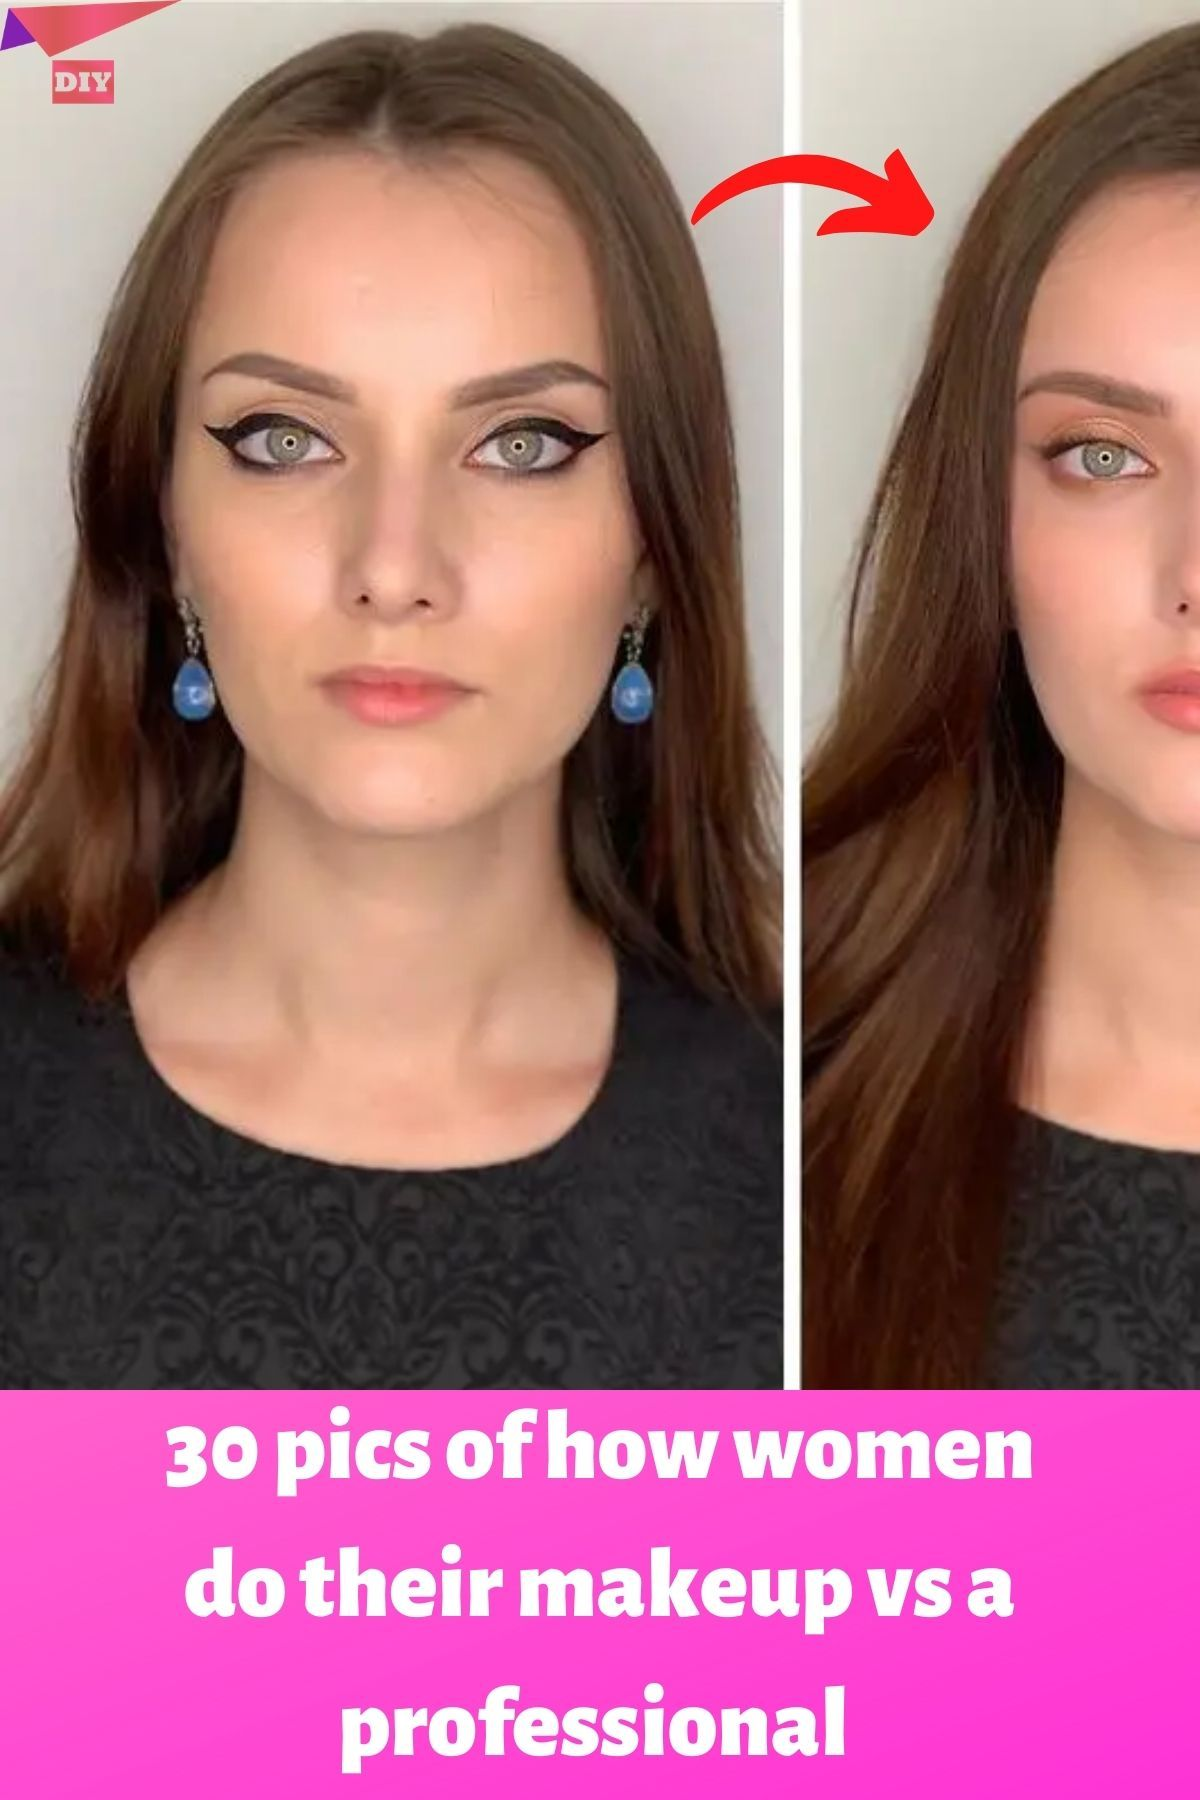 30 Pics Of How Women Do Their Makeup Vs A Professional In 2020 Putting On Makeup Diy Life Hacks Just Amazing